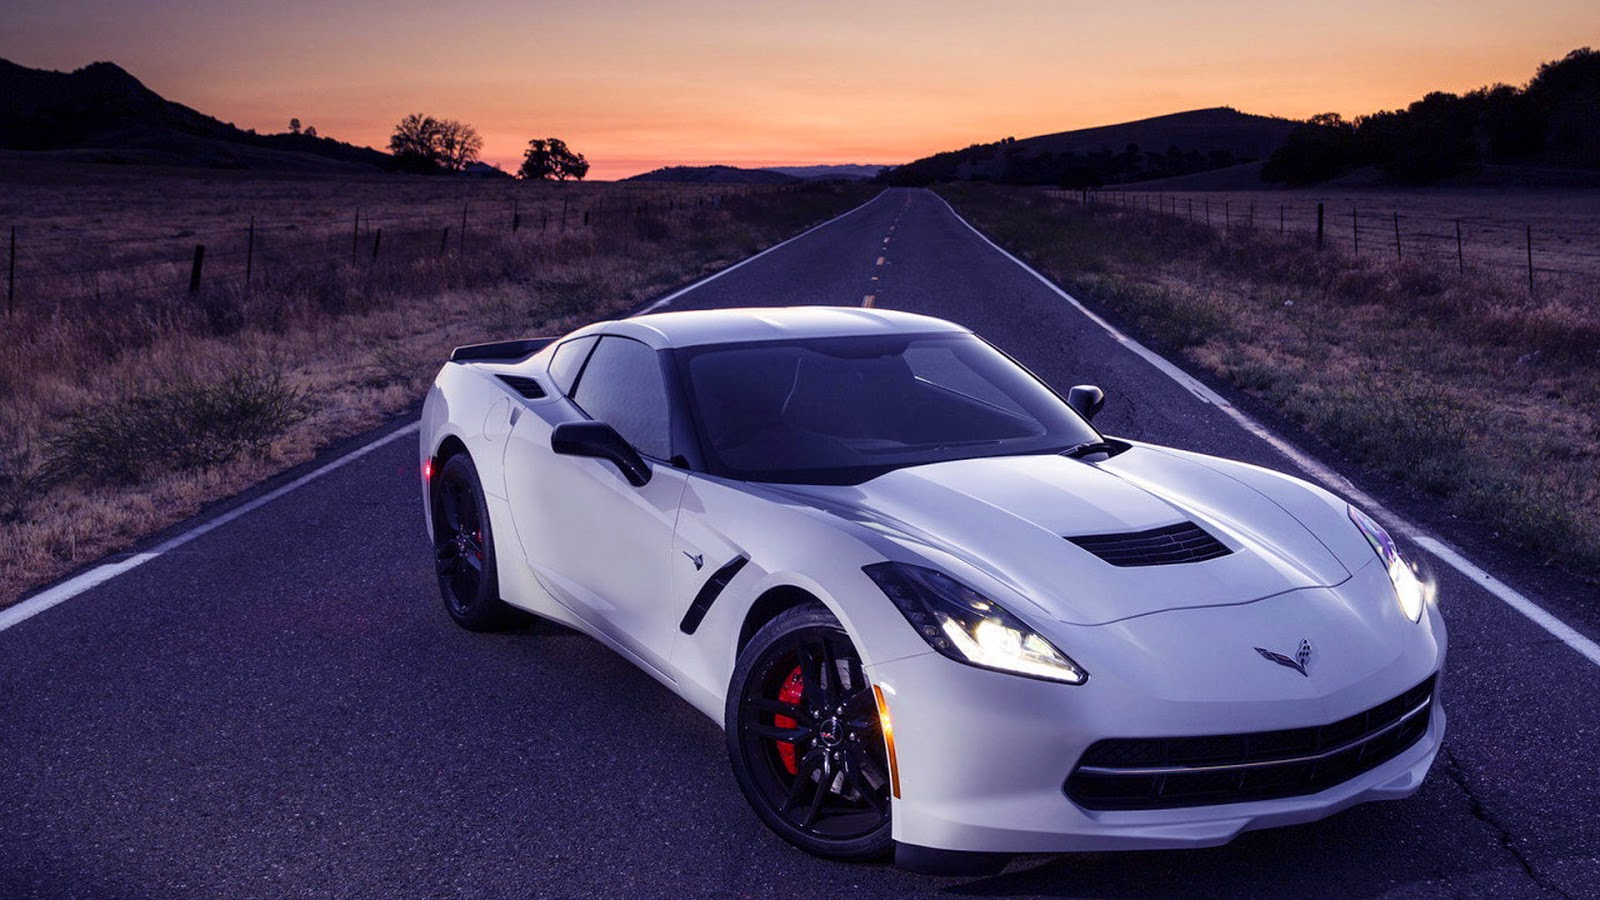 650 HP Confirmed for 2015 Corvette Z06